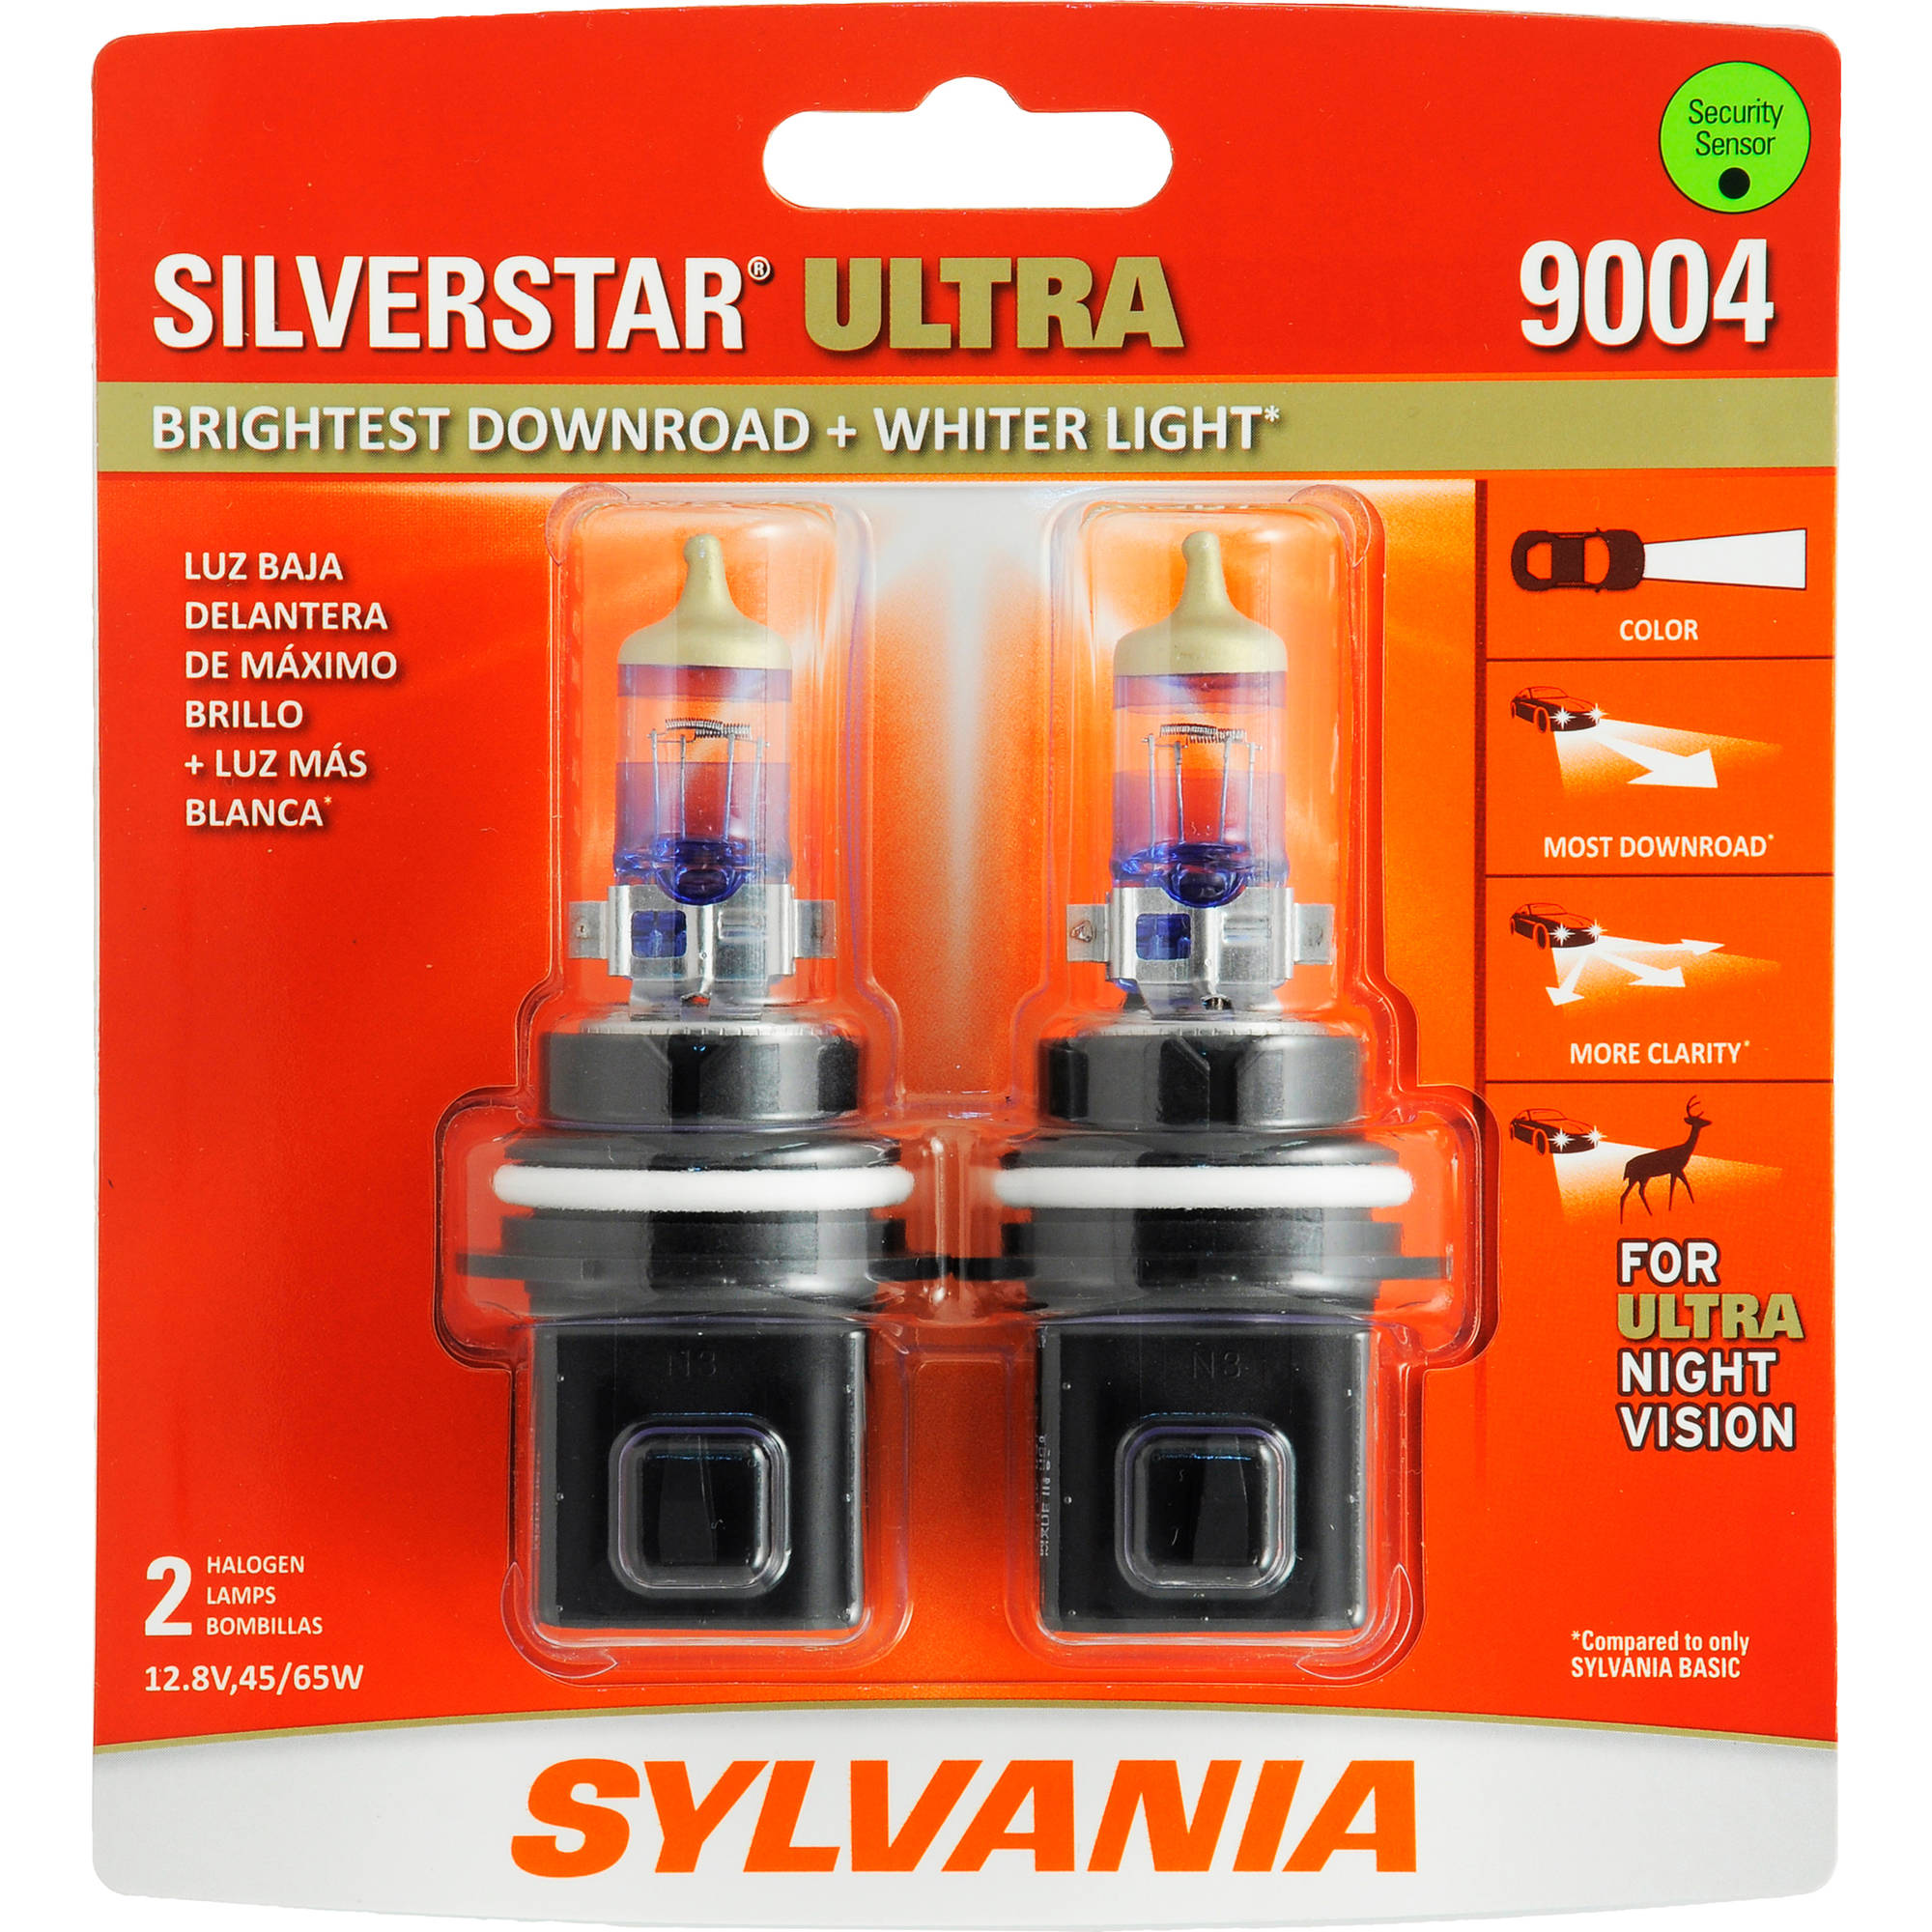 SYLVANIA 9004 SilverStar ULTRA , Twin Pack